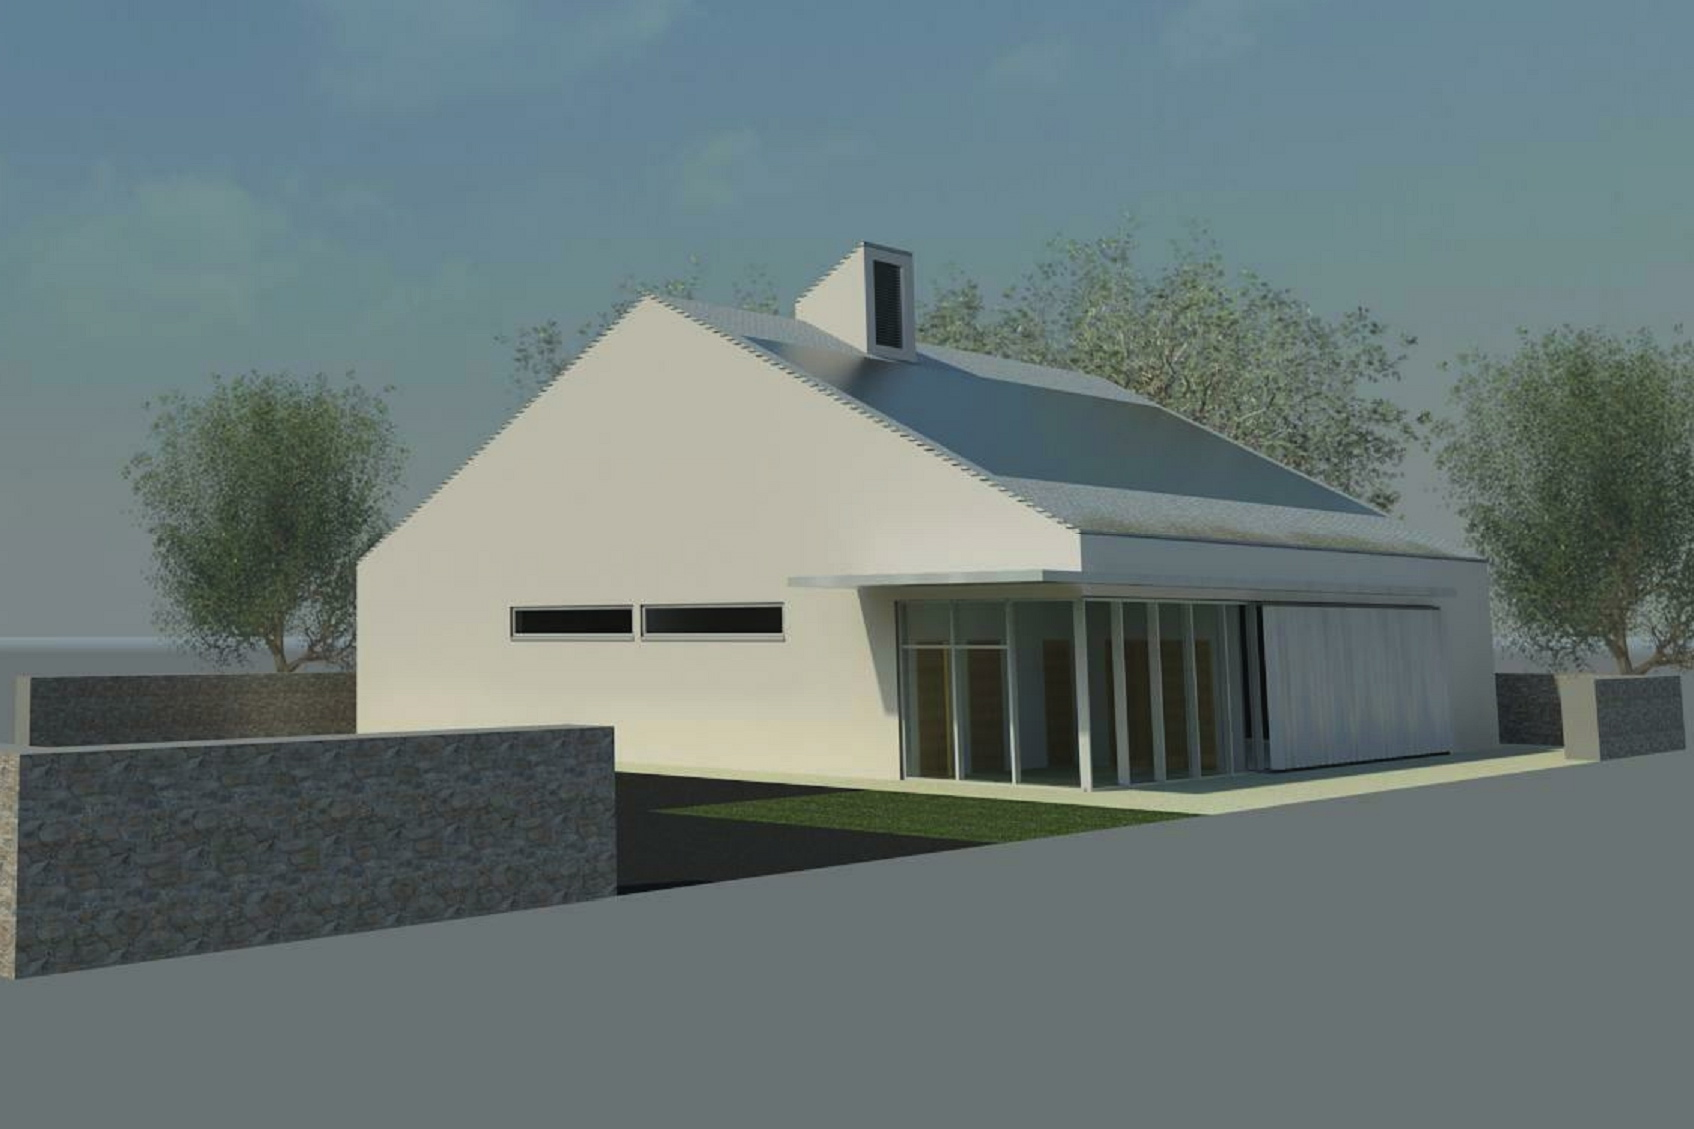 melling 3 small sq plan - Rendering - 3D View 2_3